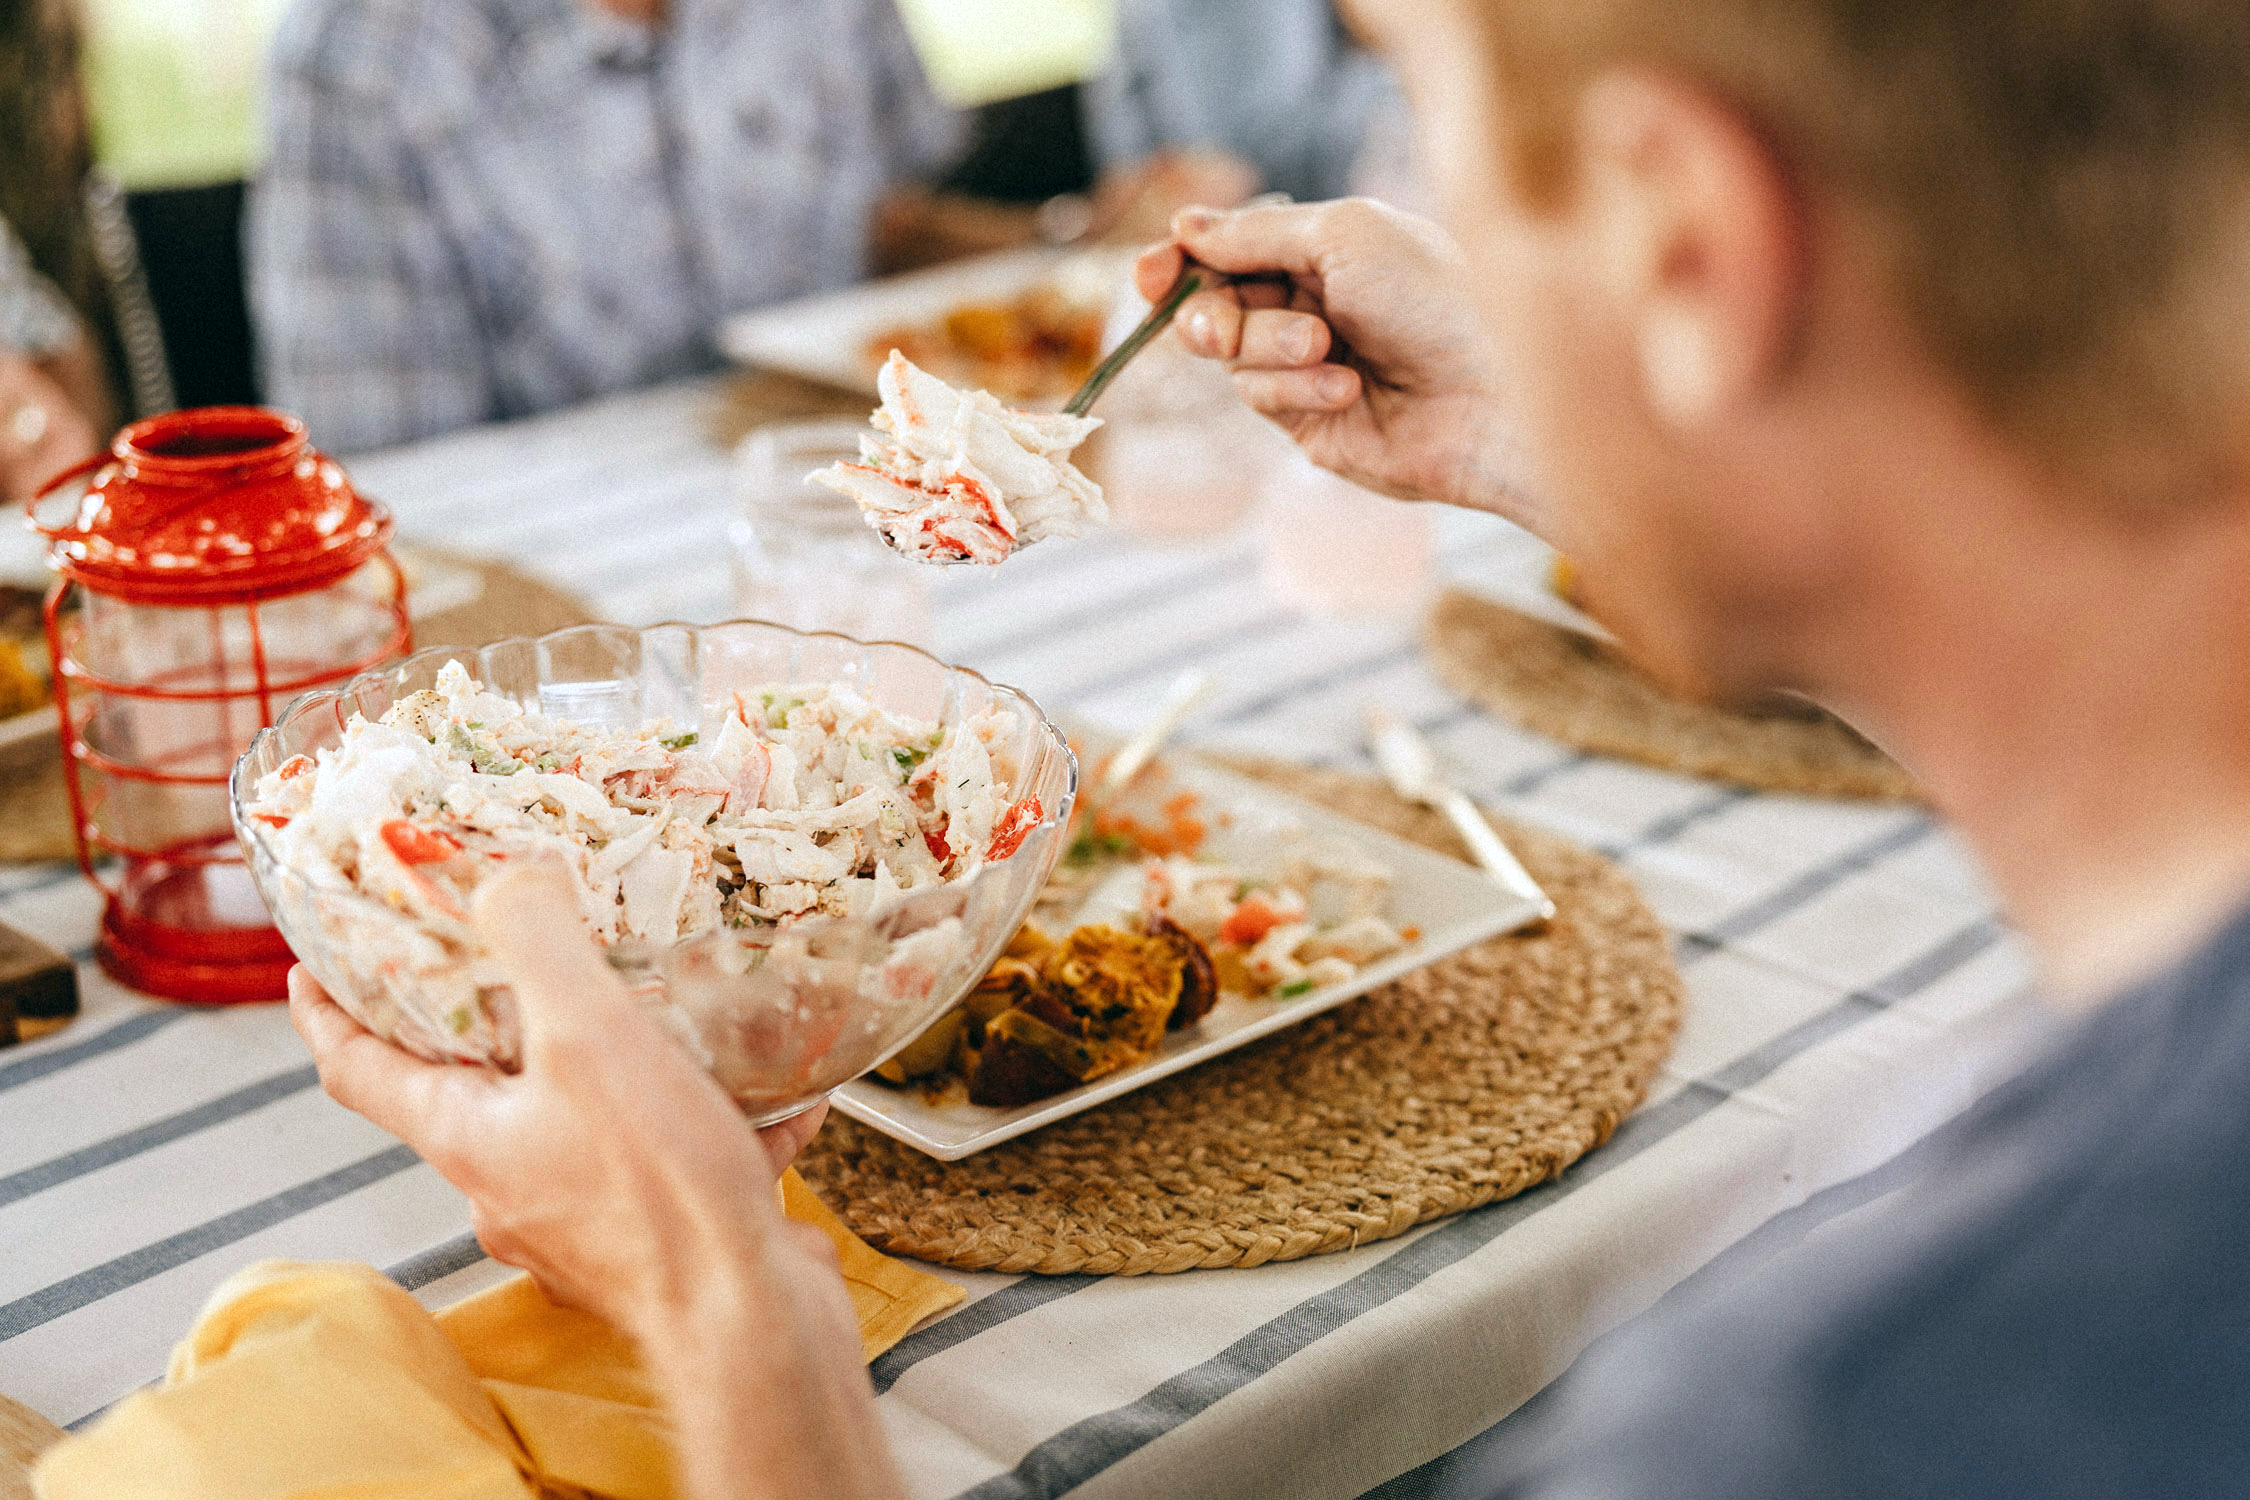 seafood is important for men's health. Man eating surimi salad.